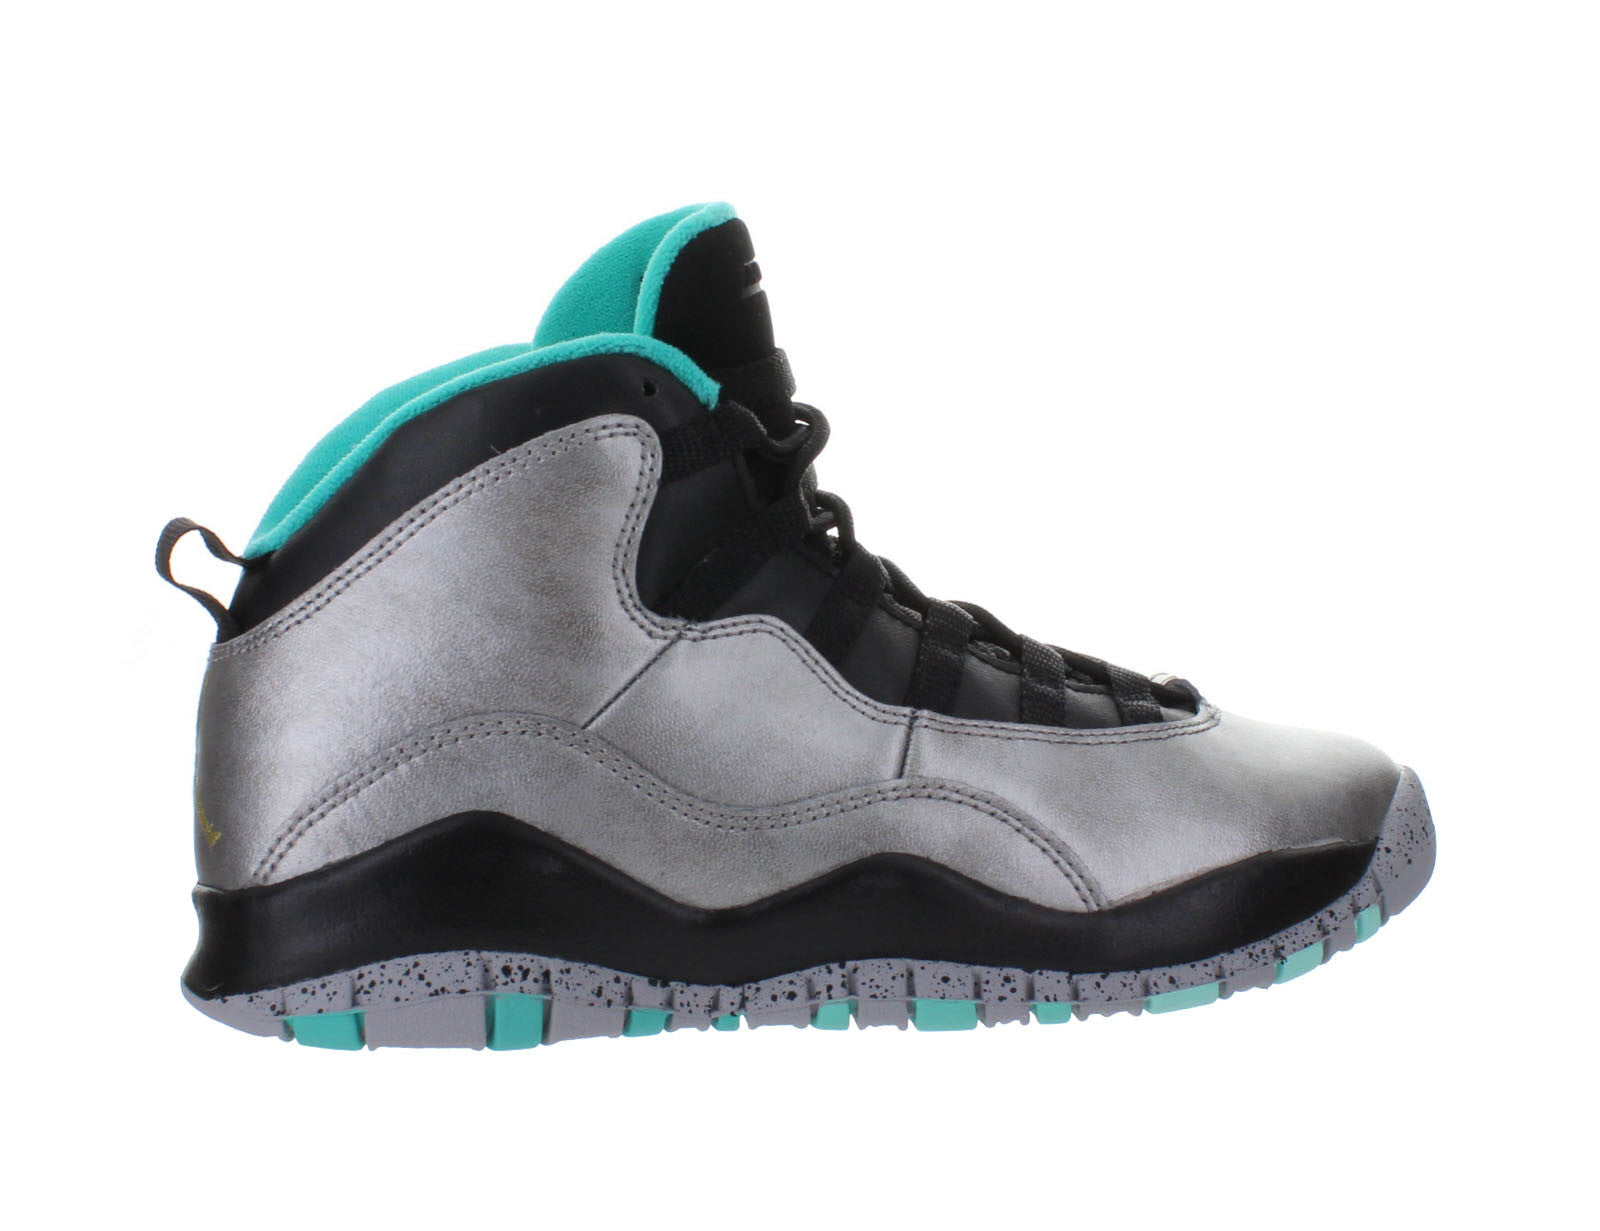 15a536c39e8 Kids Air Jordan Retro 10 X GS Lady Liberty Dust Black Metallic Gold  705179-045